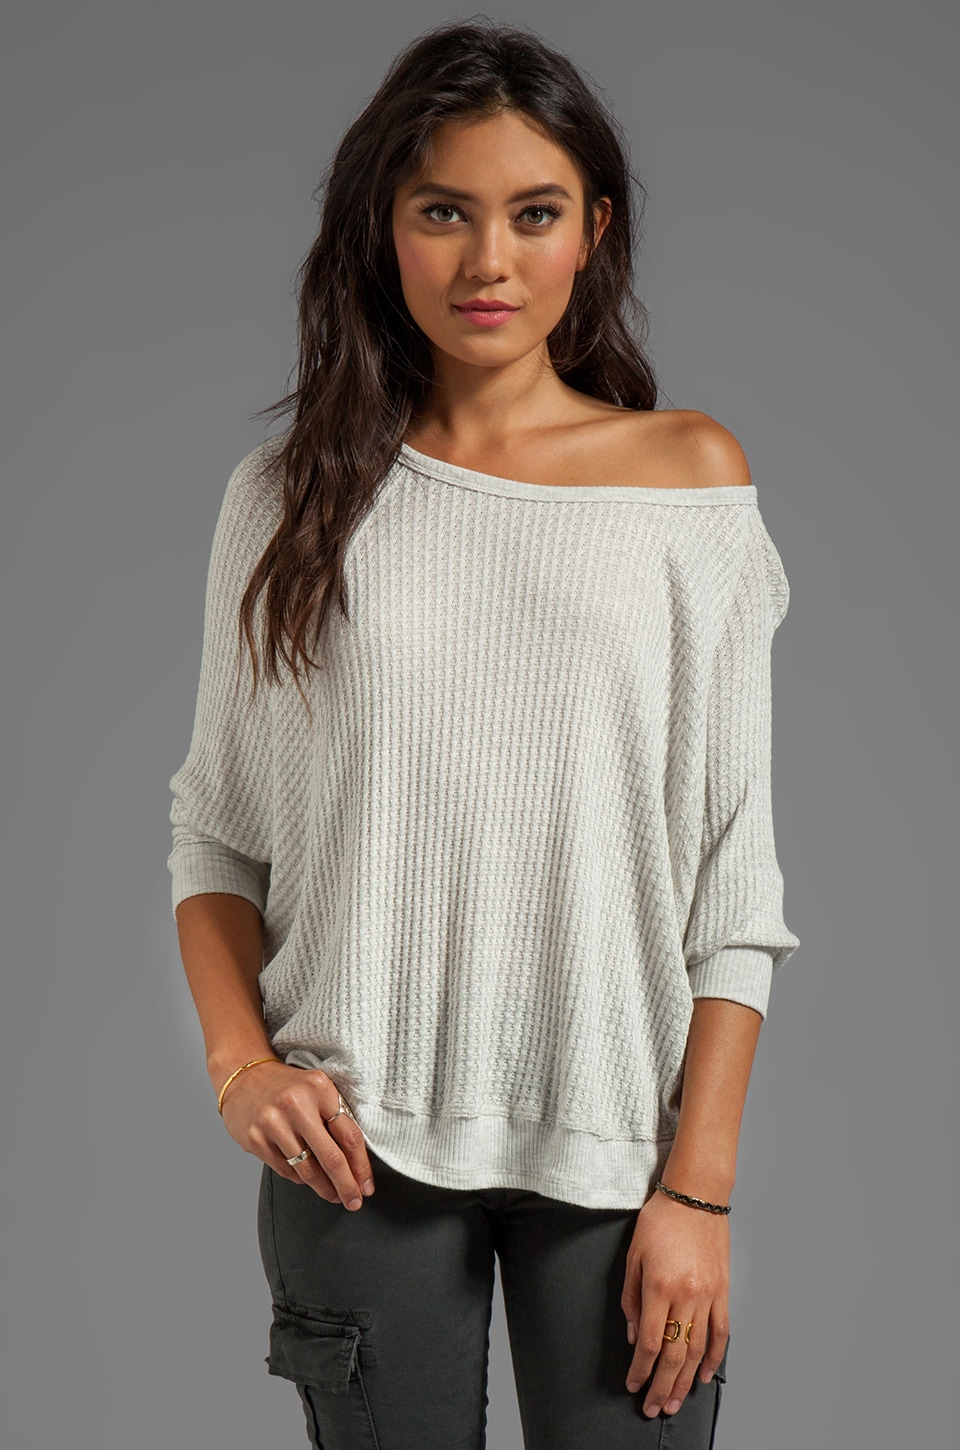 Velvet by Graham & Spencer Sydney Thermal Knit Over Sized Long Sleeve in Crea